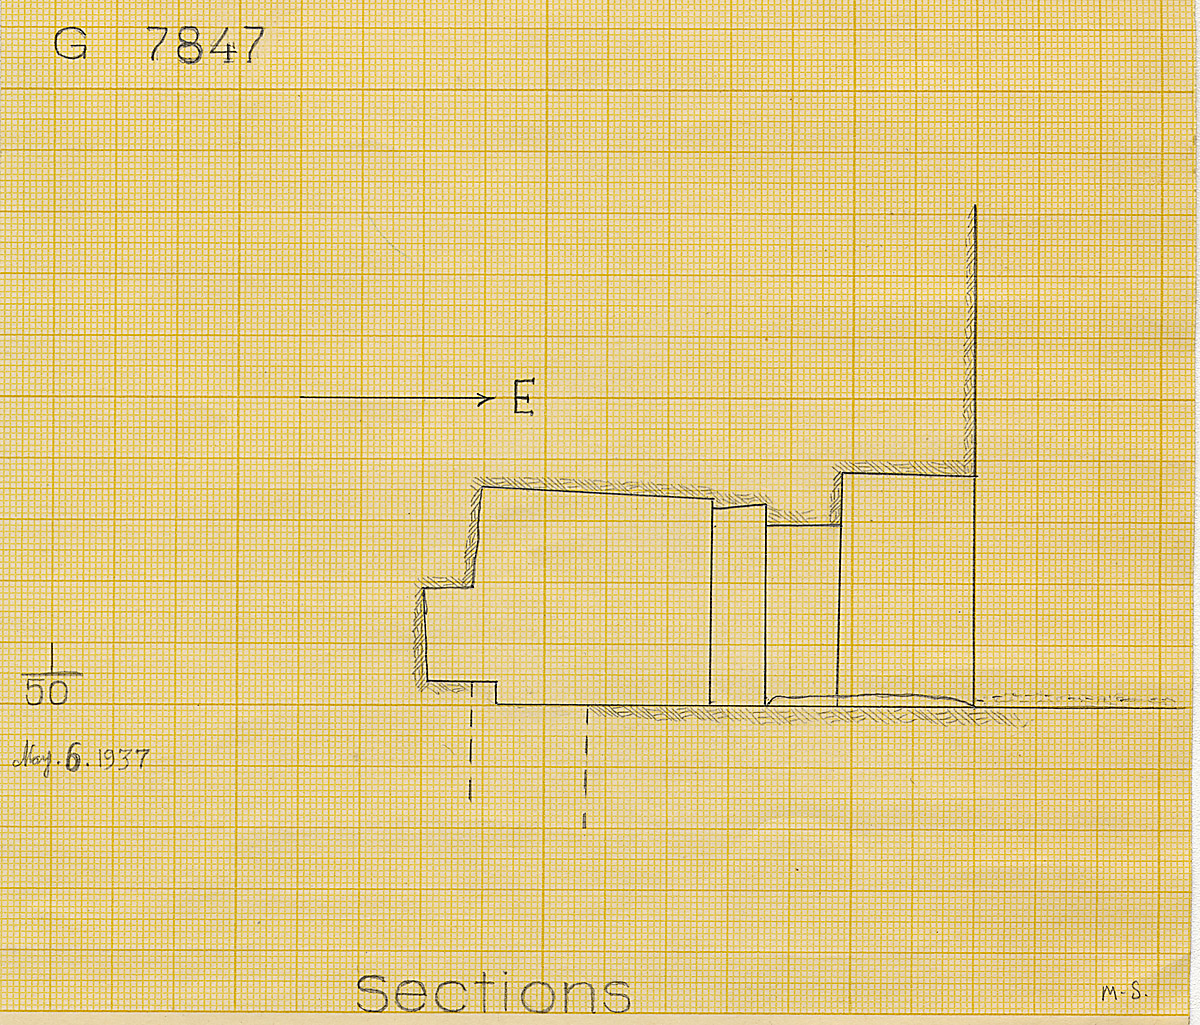 Maps and plans: G 7847, Section